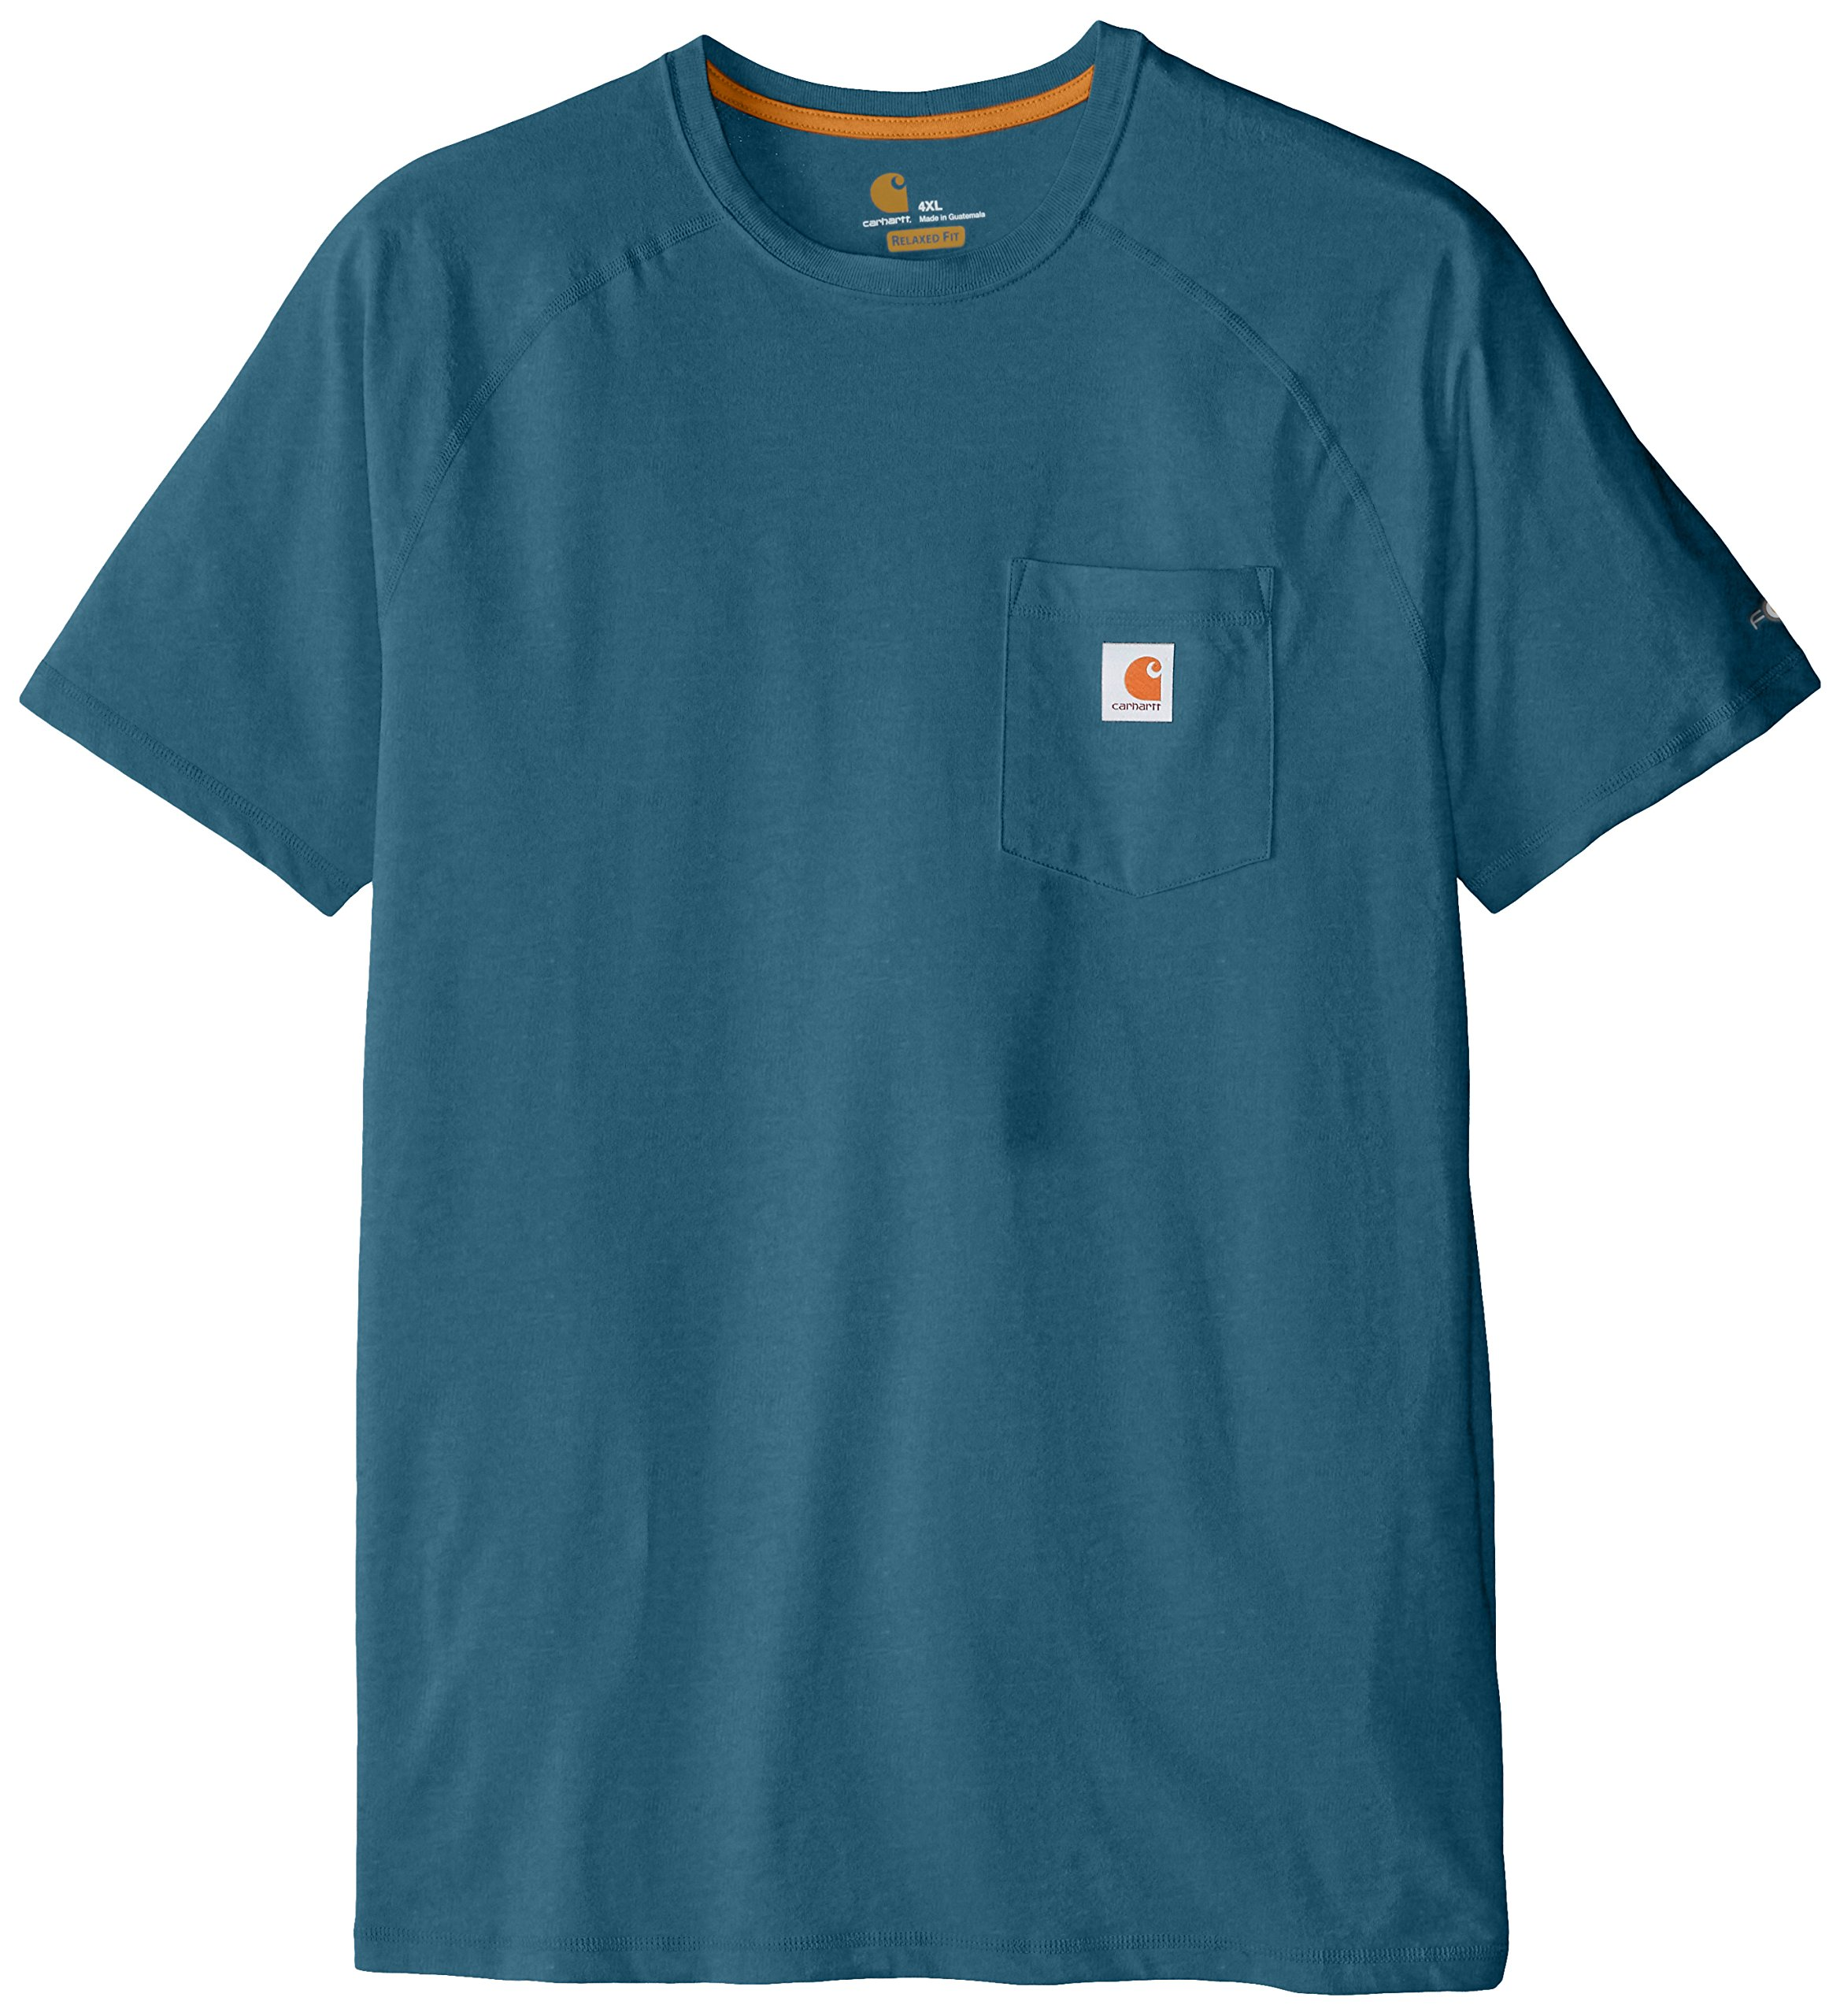 Carhartt Men's Big & Tall Force Cotton Delmont Short Sleeve T Shirt Relaxed Fit, Bay Harbor, 2X-Large/Tall